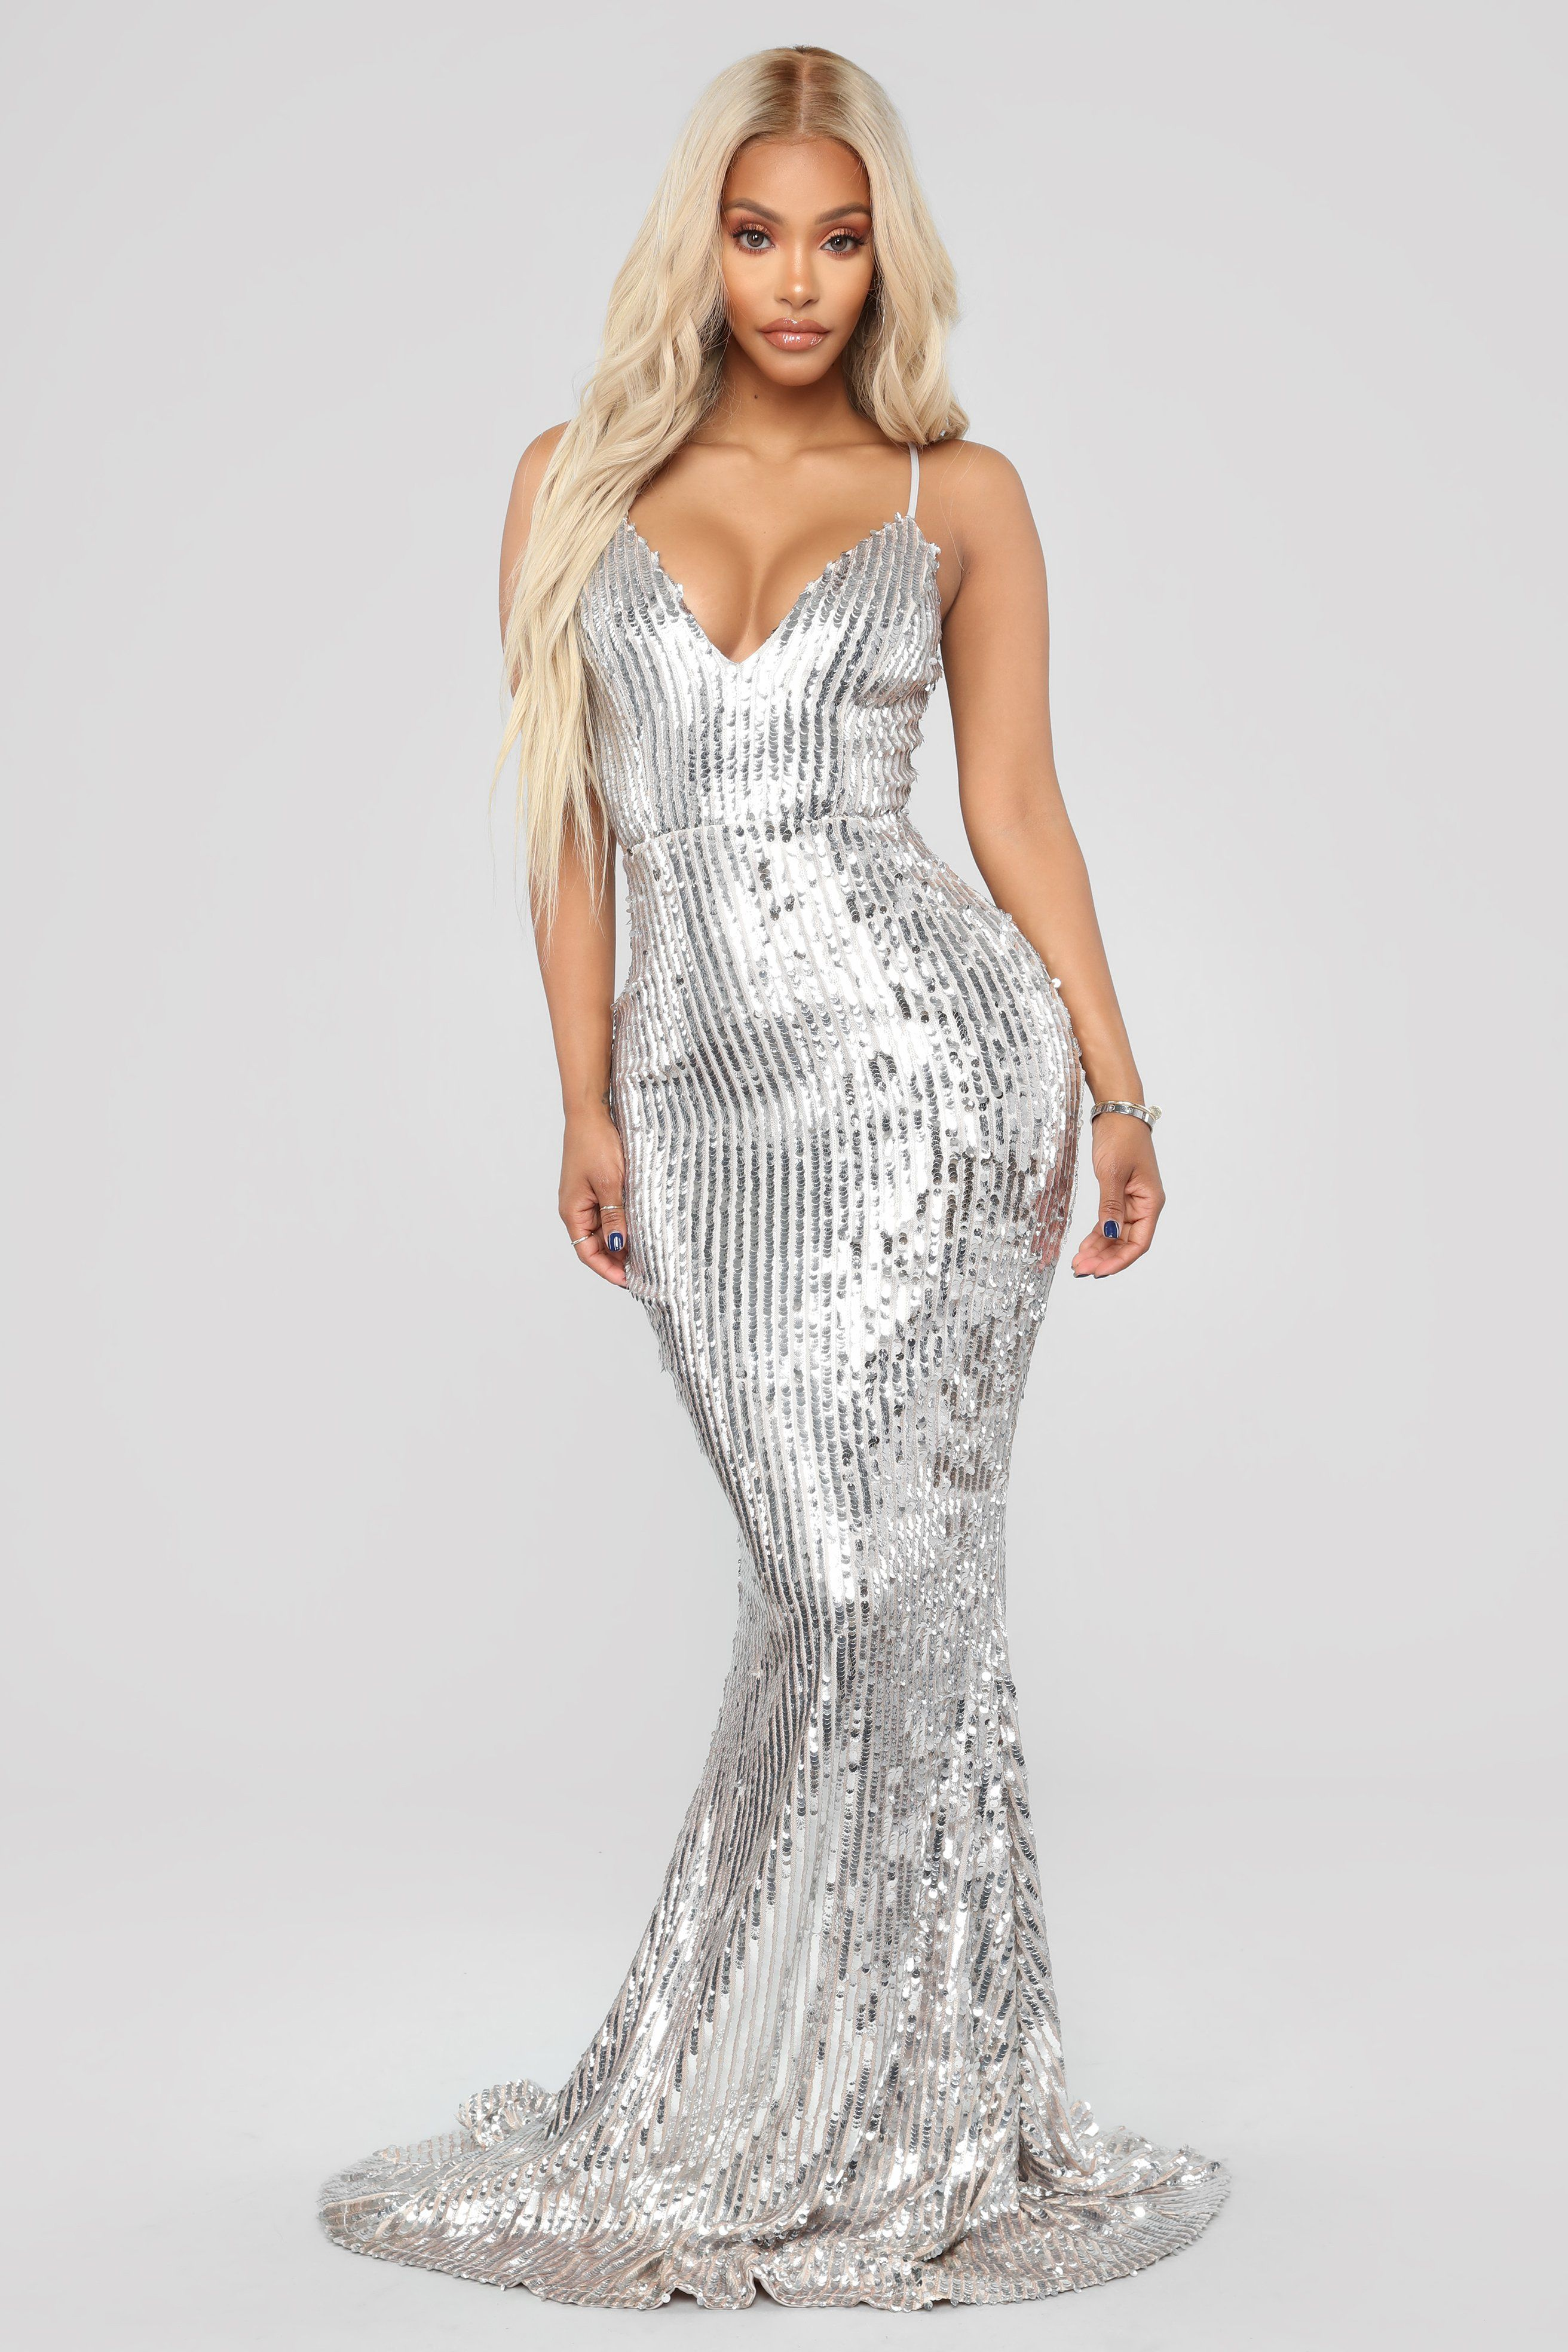 1ef854180f10c Isla Rose Sequin Dress - Blush/Silver in 2019 | Celestial Show ...